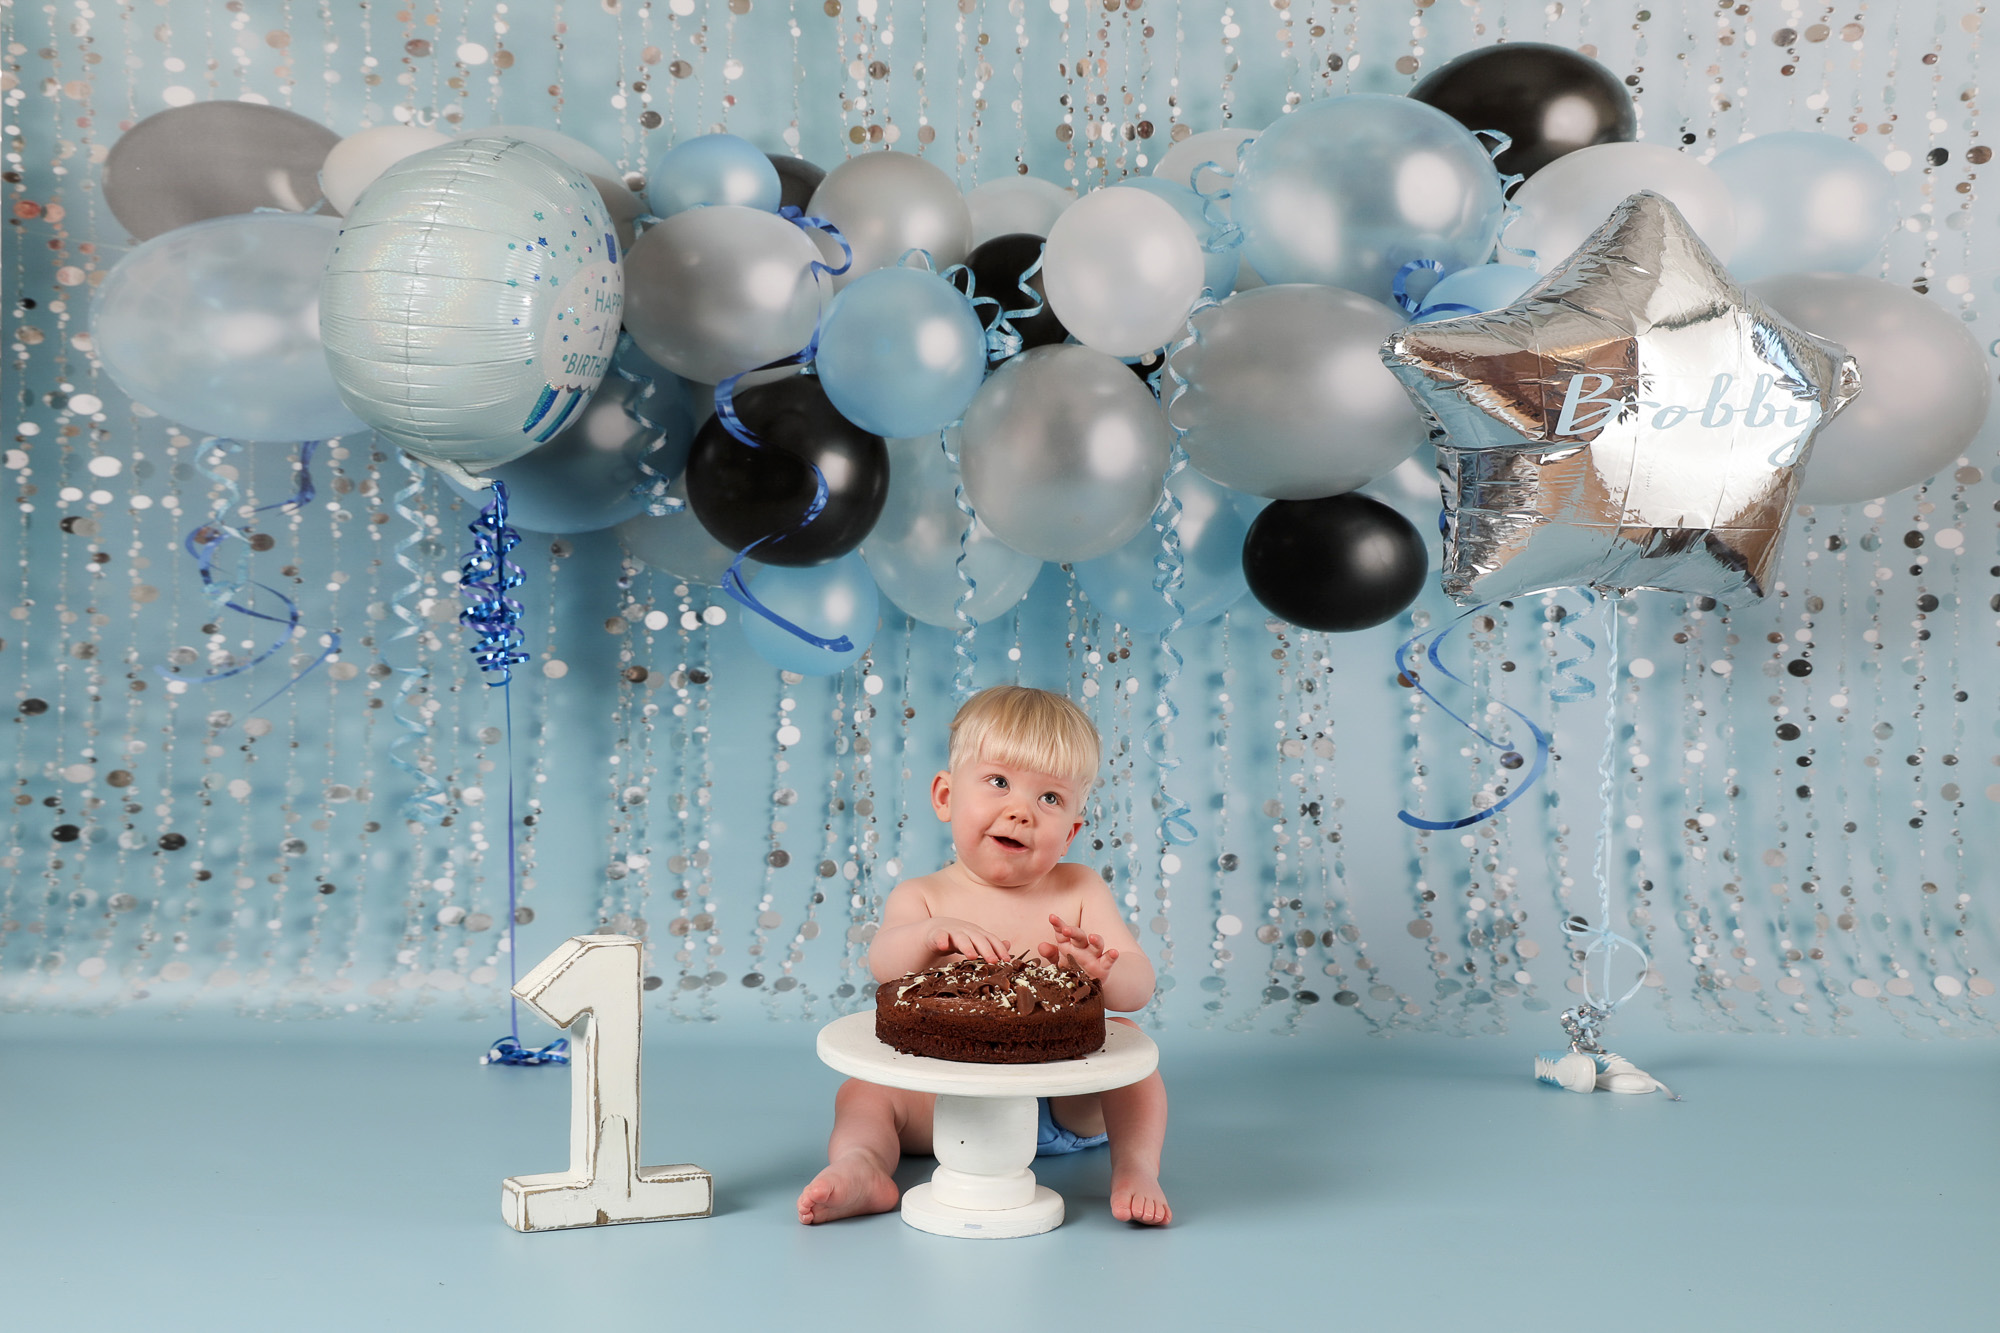 first birthday cakesmash baby boy smiling with blue balloon backdrop